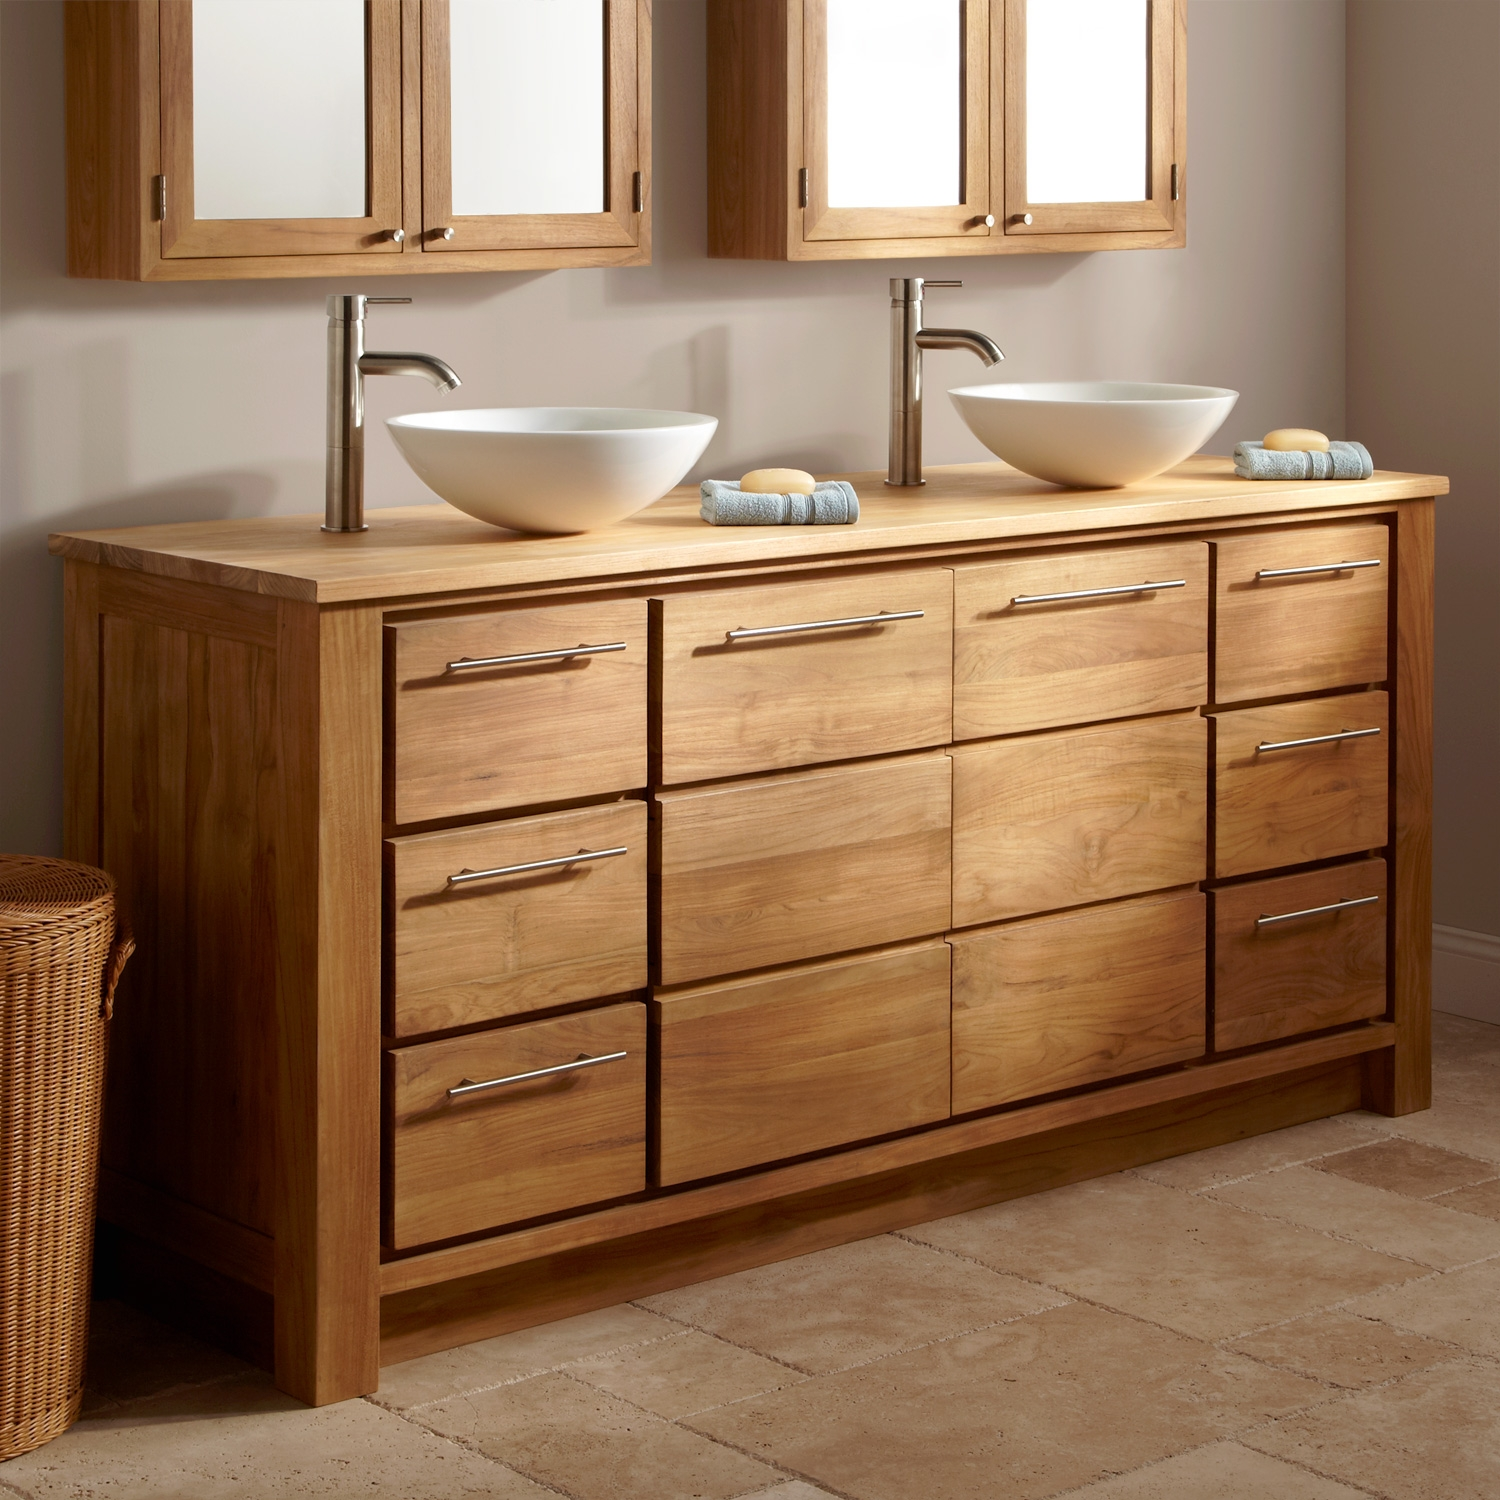 55 Inch Bathroom Vanity Without Top